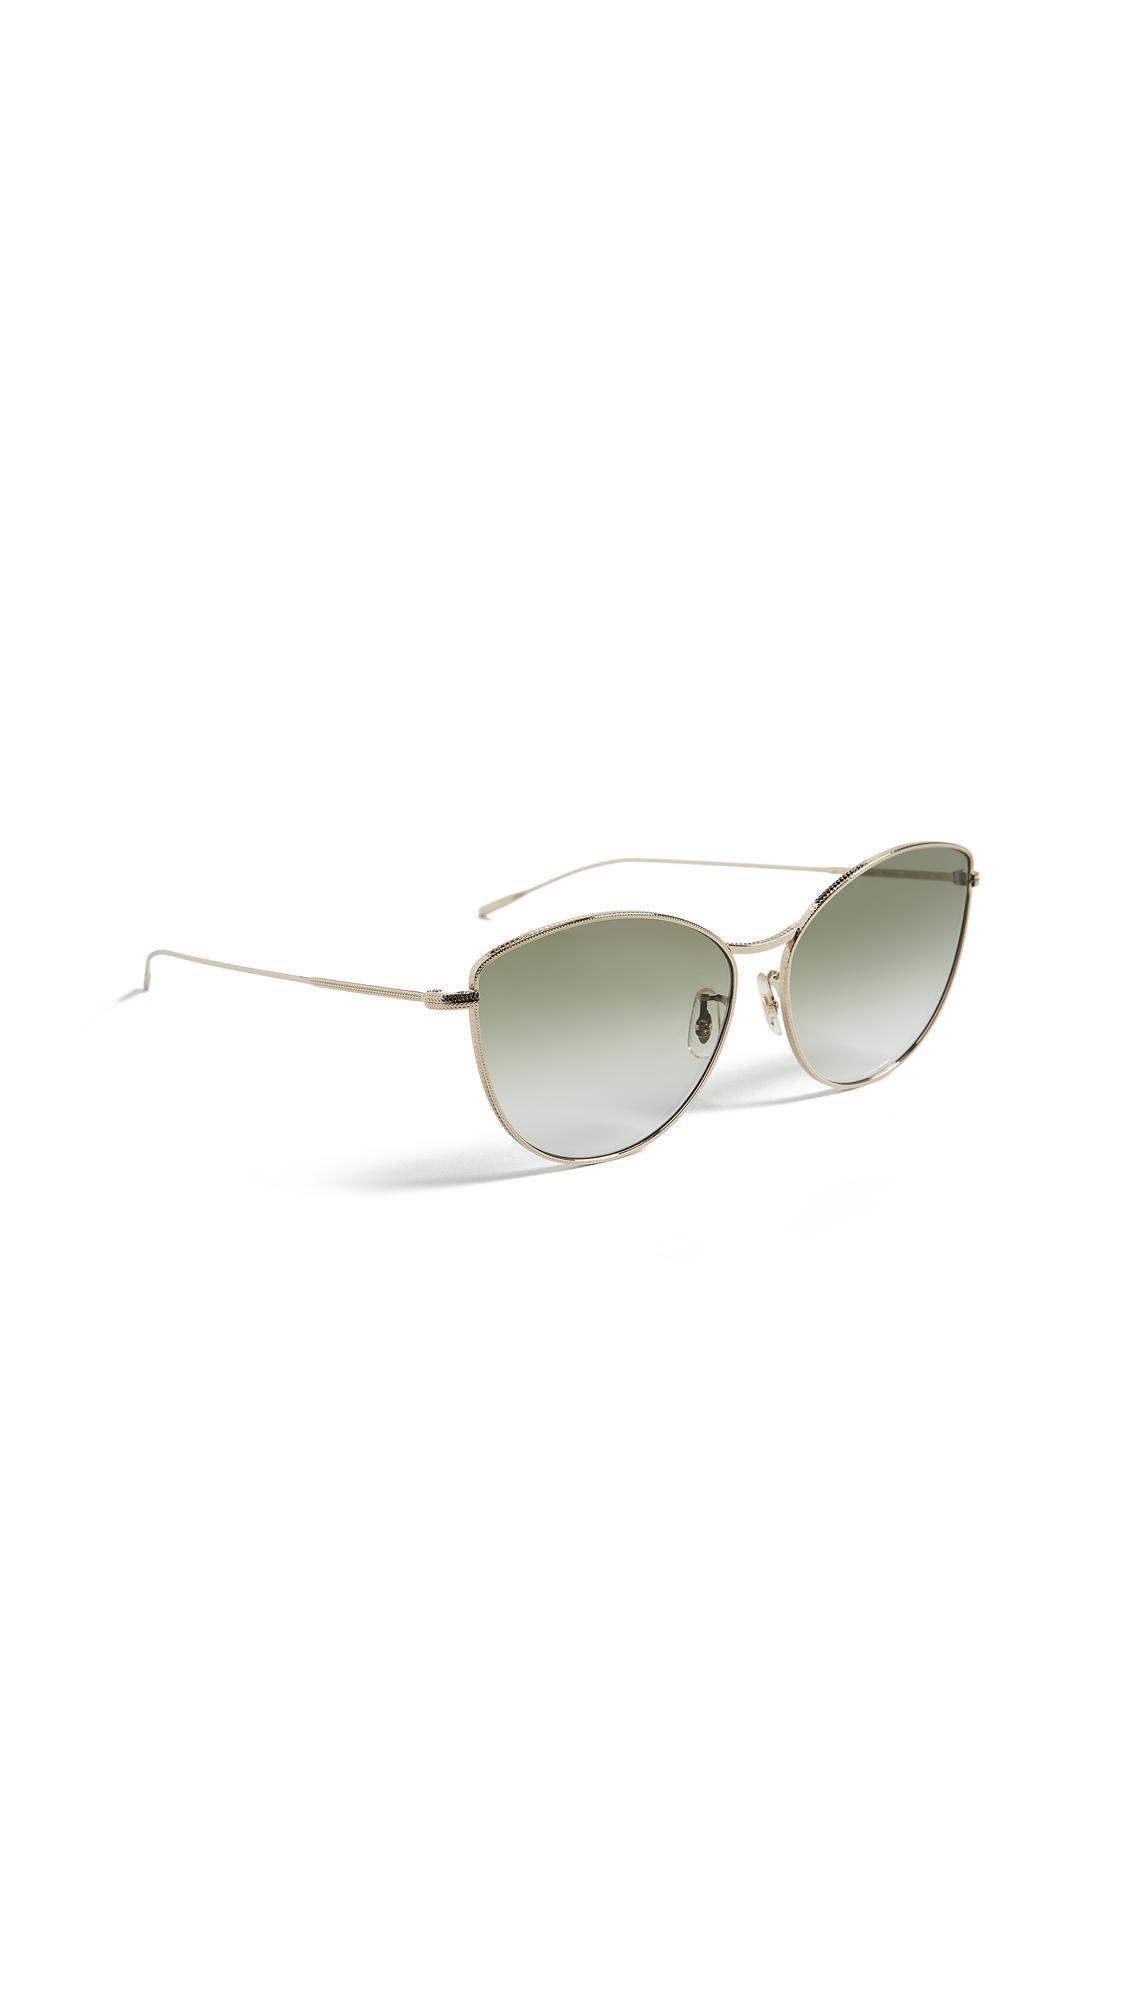 5ba404e1e4 Oliver Peoples Rayette Sunglasses In Soft Gold Olive Gradient